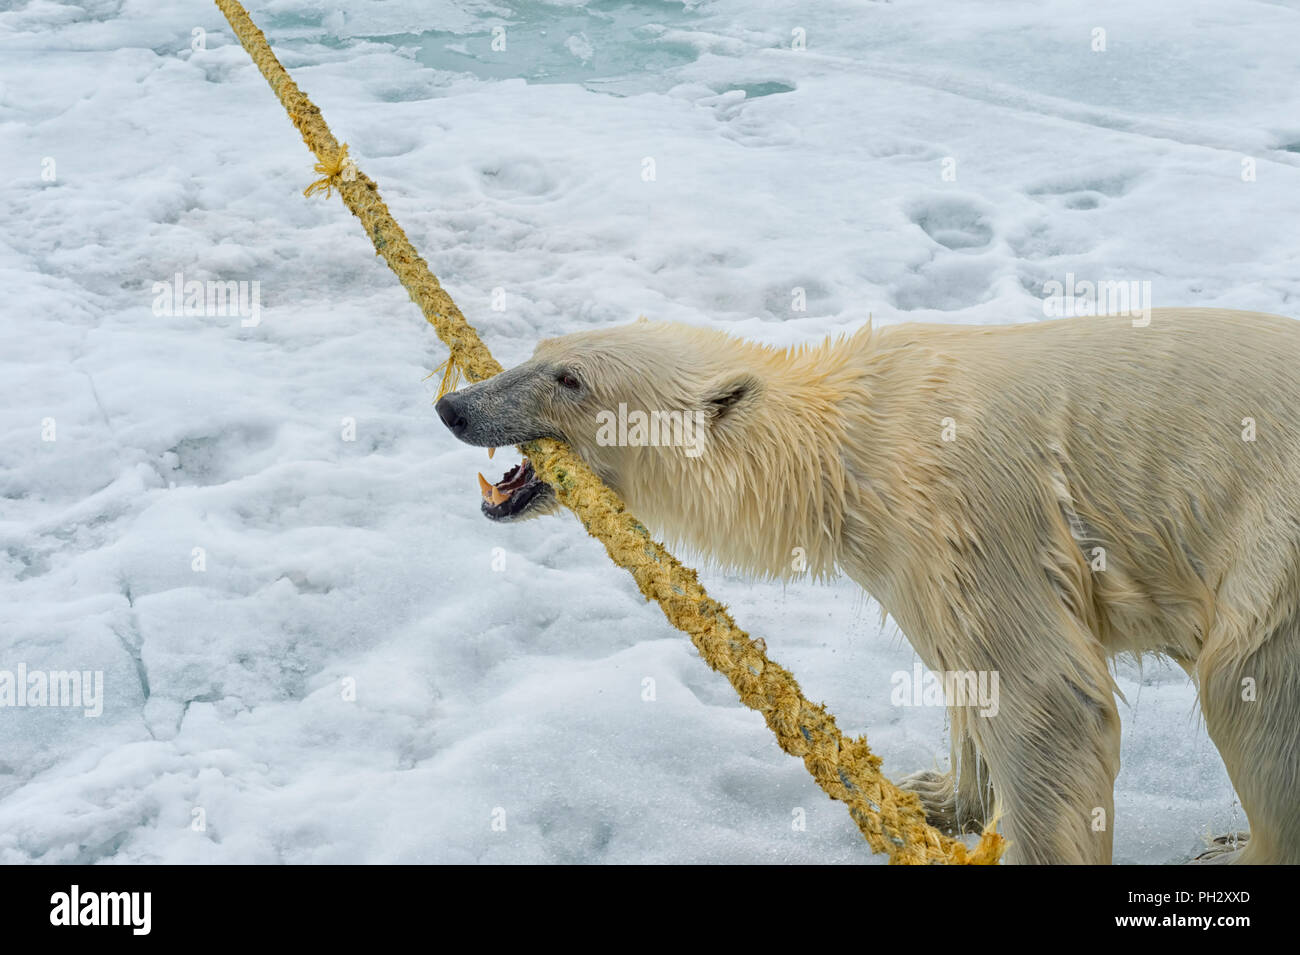 Polar Bear (Ursus maritimus) pulling and biting on the rope of an expedition ship, Svalbard Archipelago, Norway - Stock Image